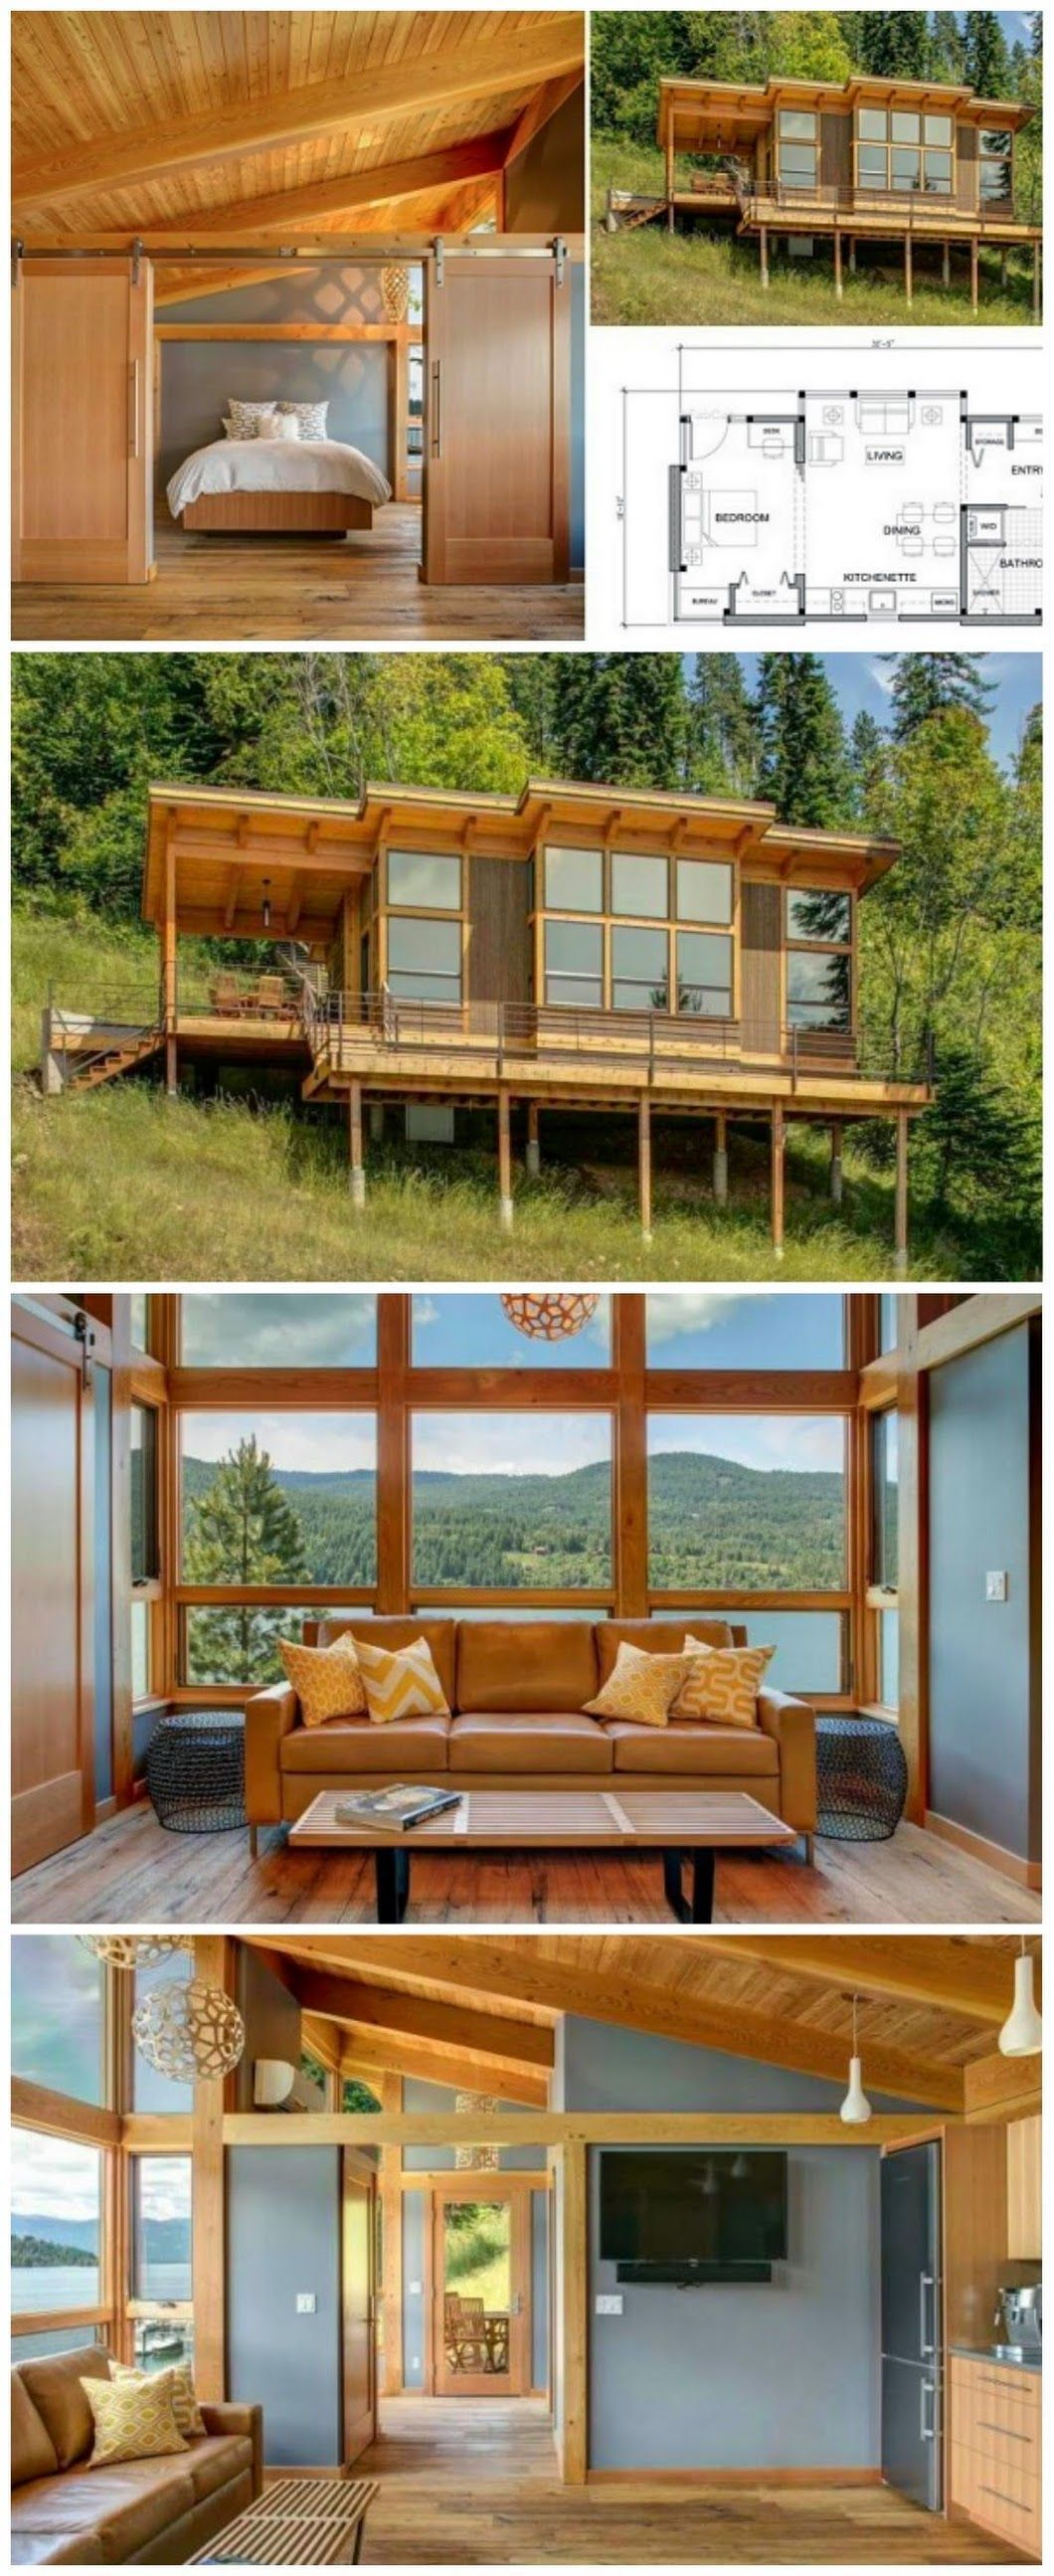 Best Kitchen Gallery: 550 Sq Ft Prefab Timber Cabin See More Here > of Goods Home Design  on rachelxblog.com